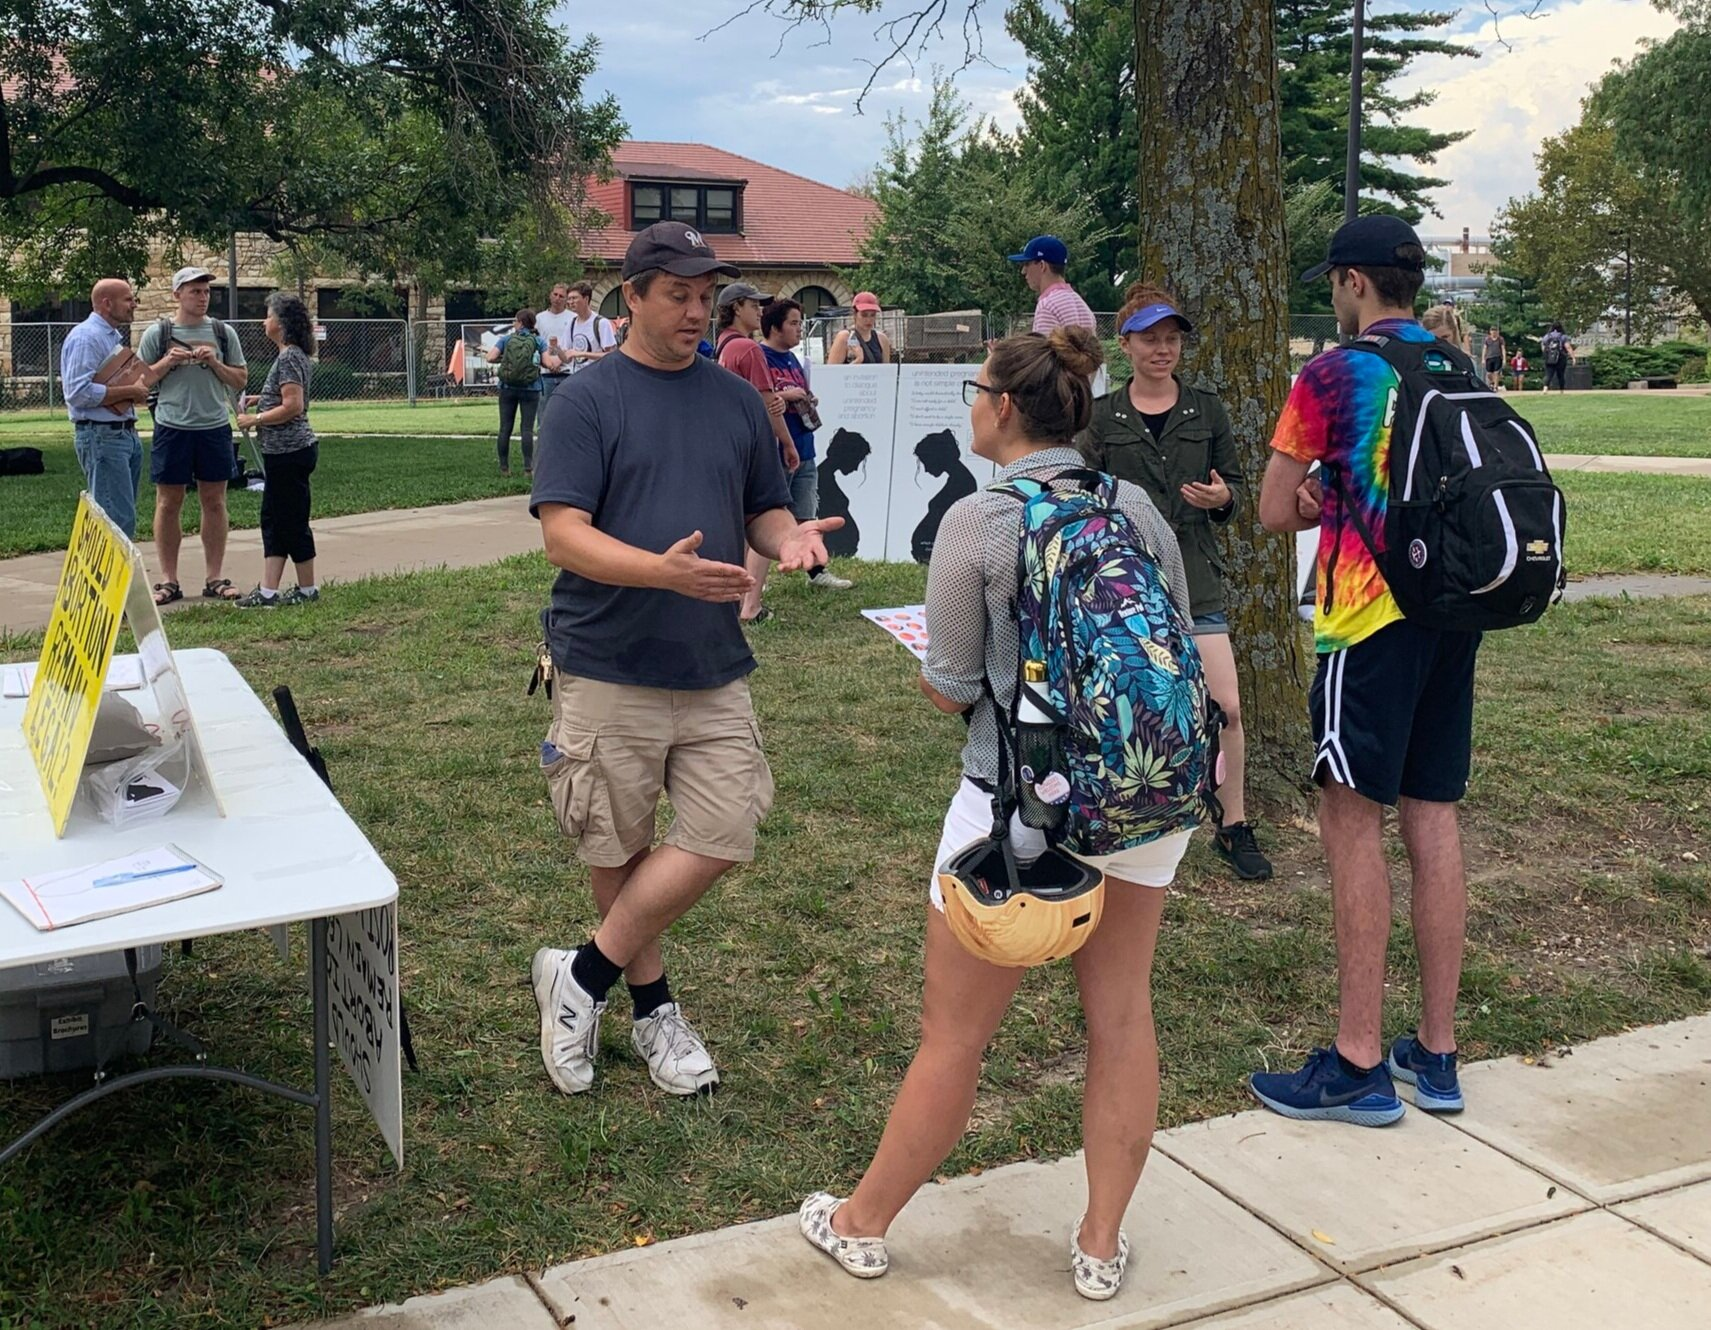 Thursday (KU):  Paul Kulas  (center) and volunteer Rebekah (second from right) interact with students near the poll table at KU.